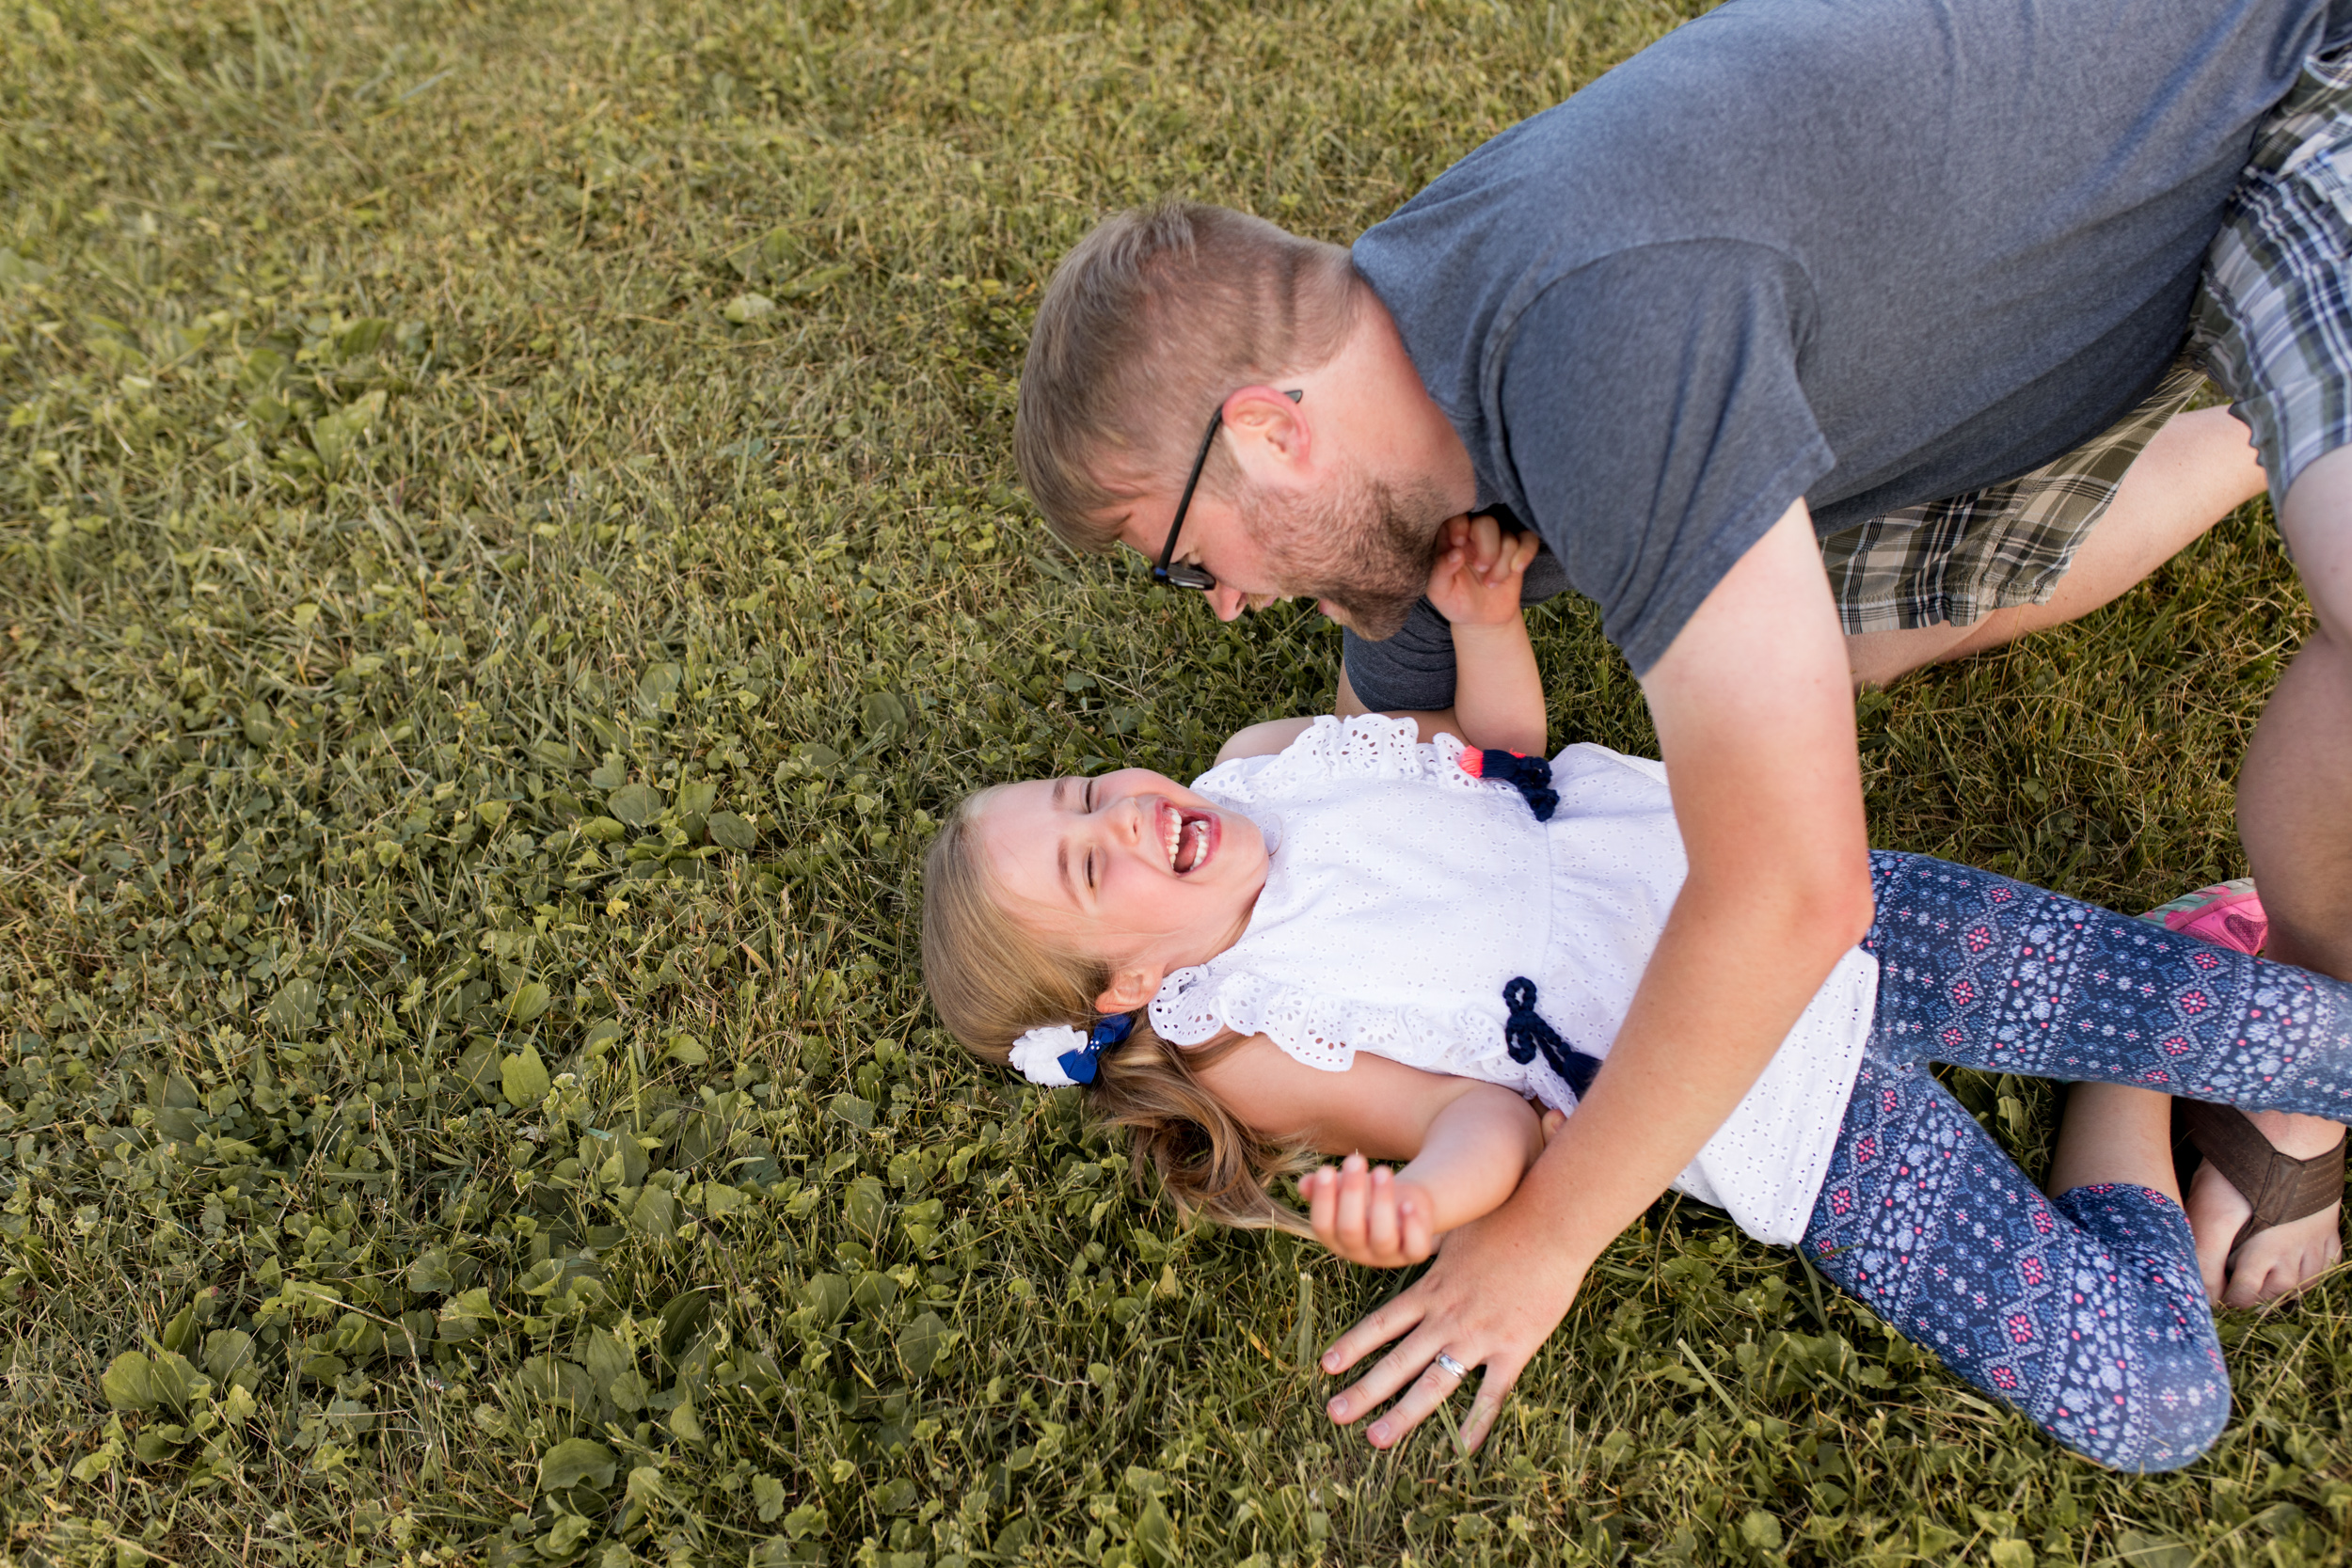 dad laughs with daughter in grass